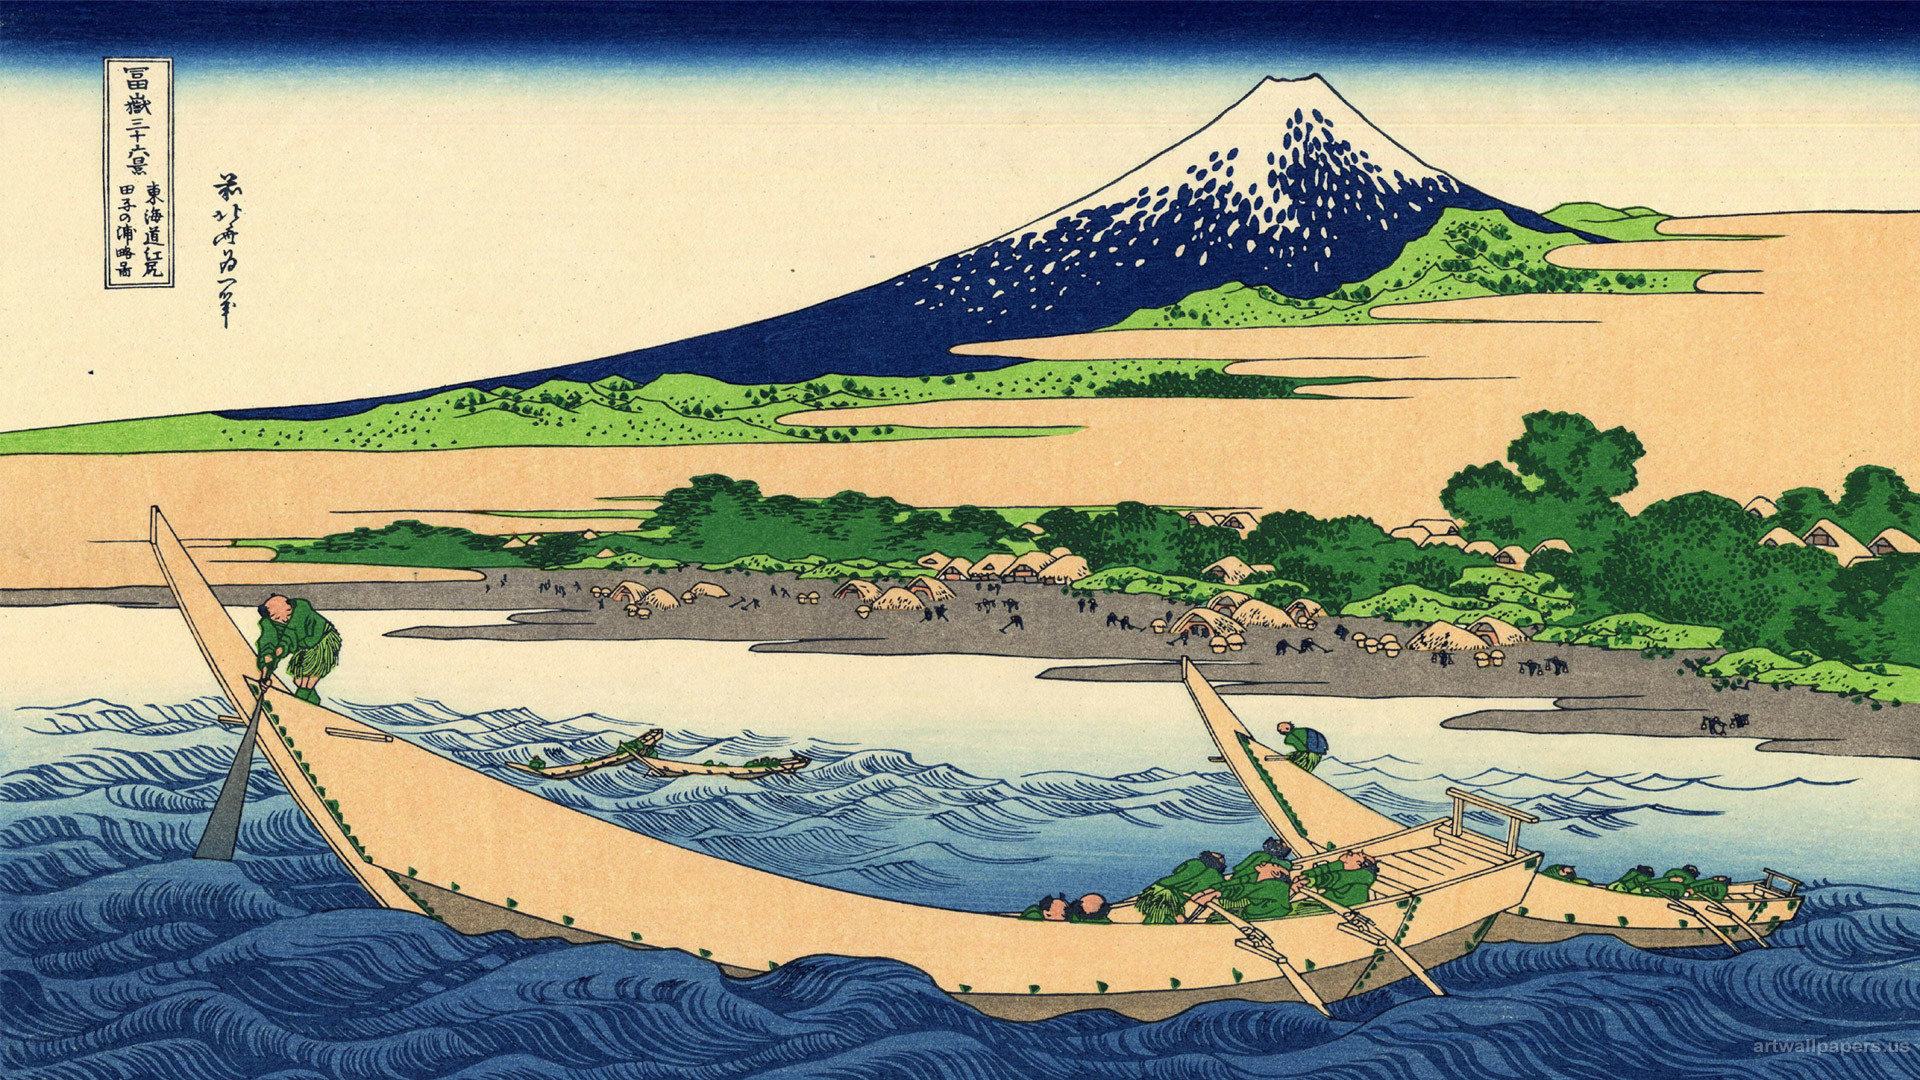 Hokusai Wallpaper, The Great Wave at Kanagawa, Art Print, Wallpapers .